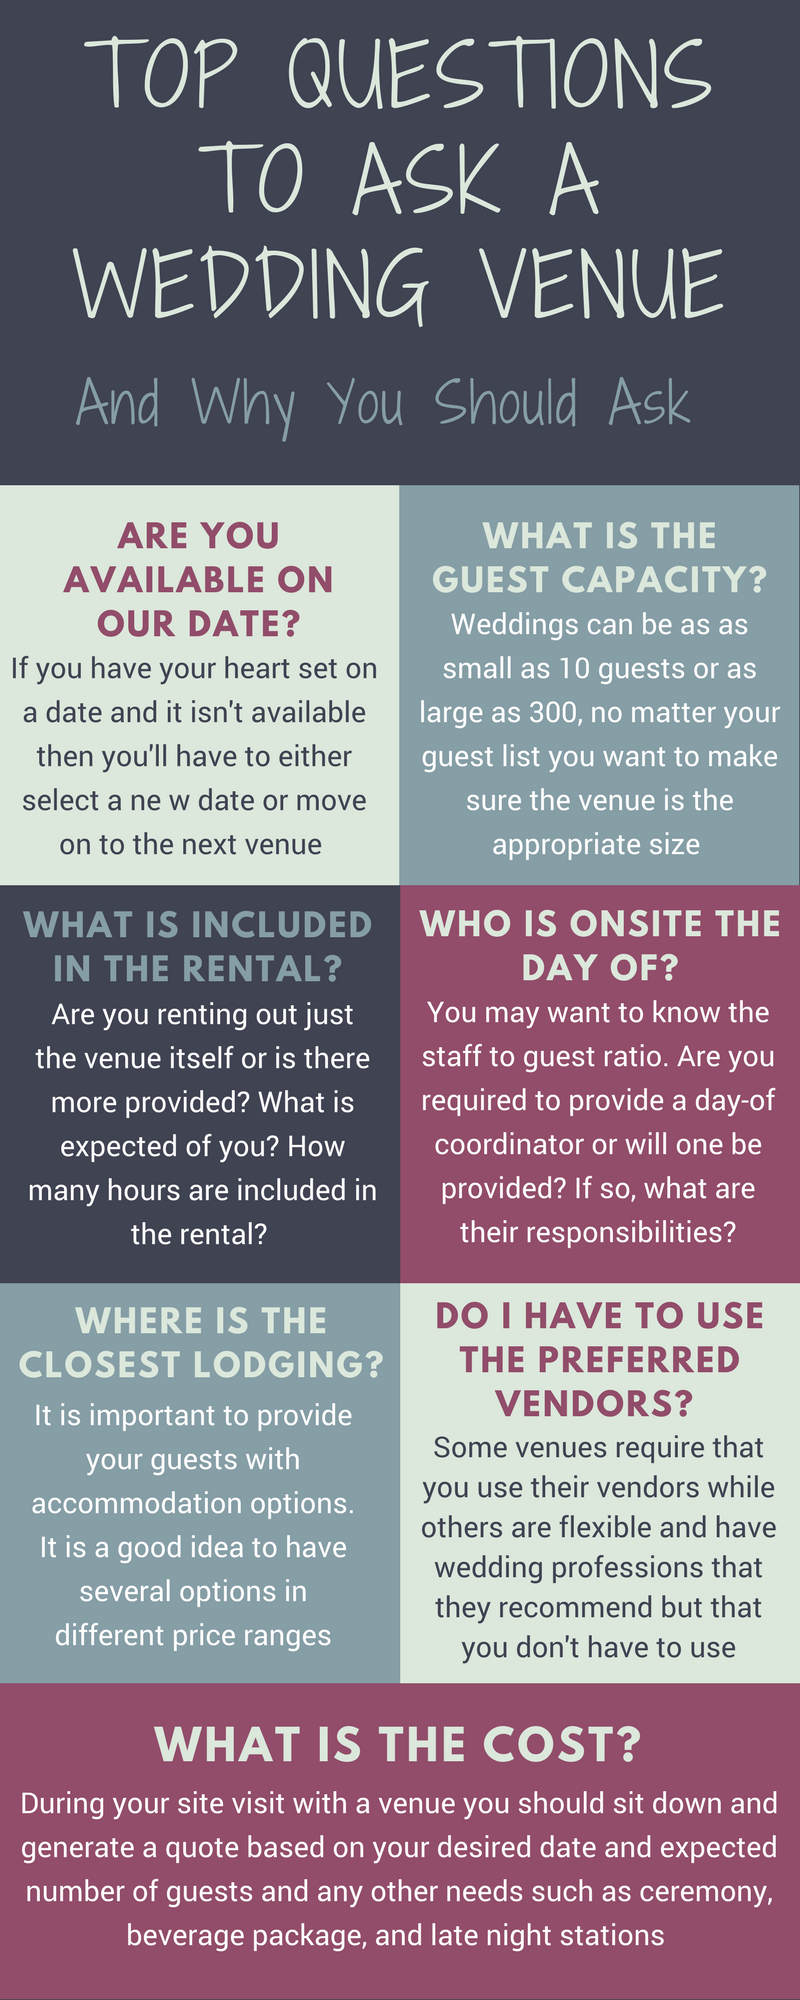 Top Questions to Ask a Wedding Venue-2.png